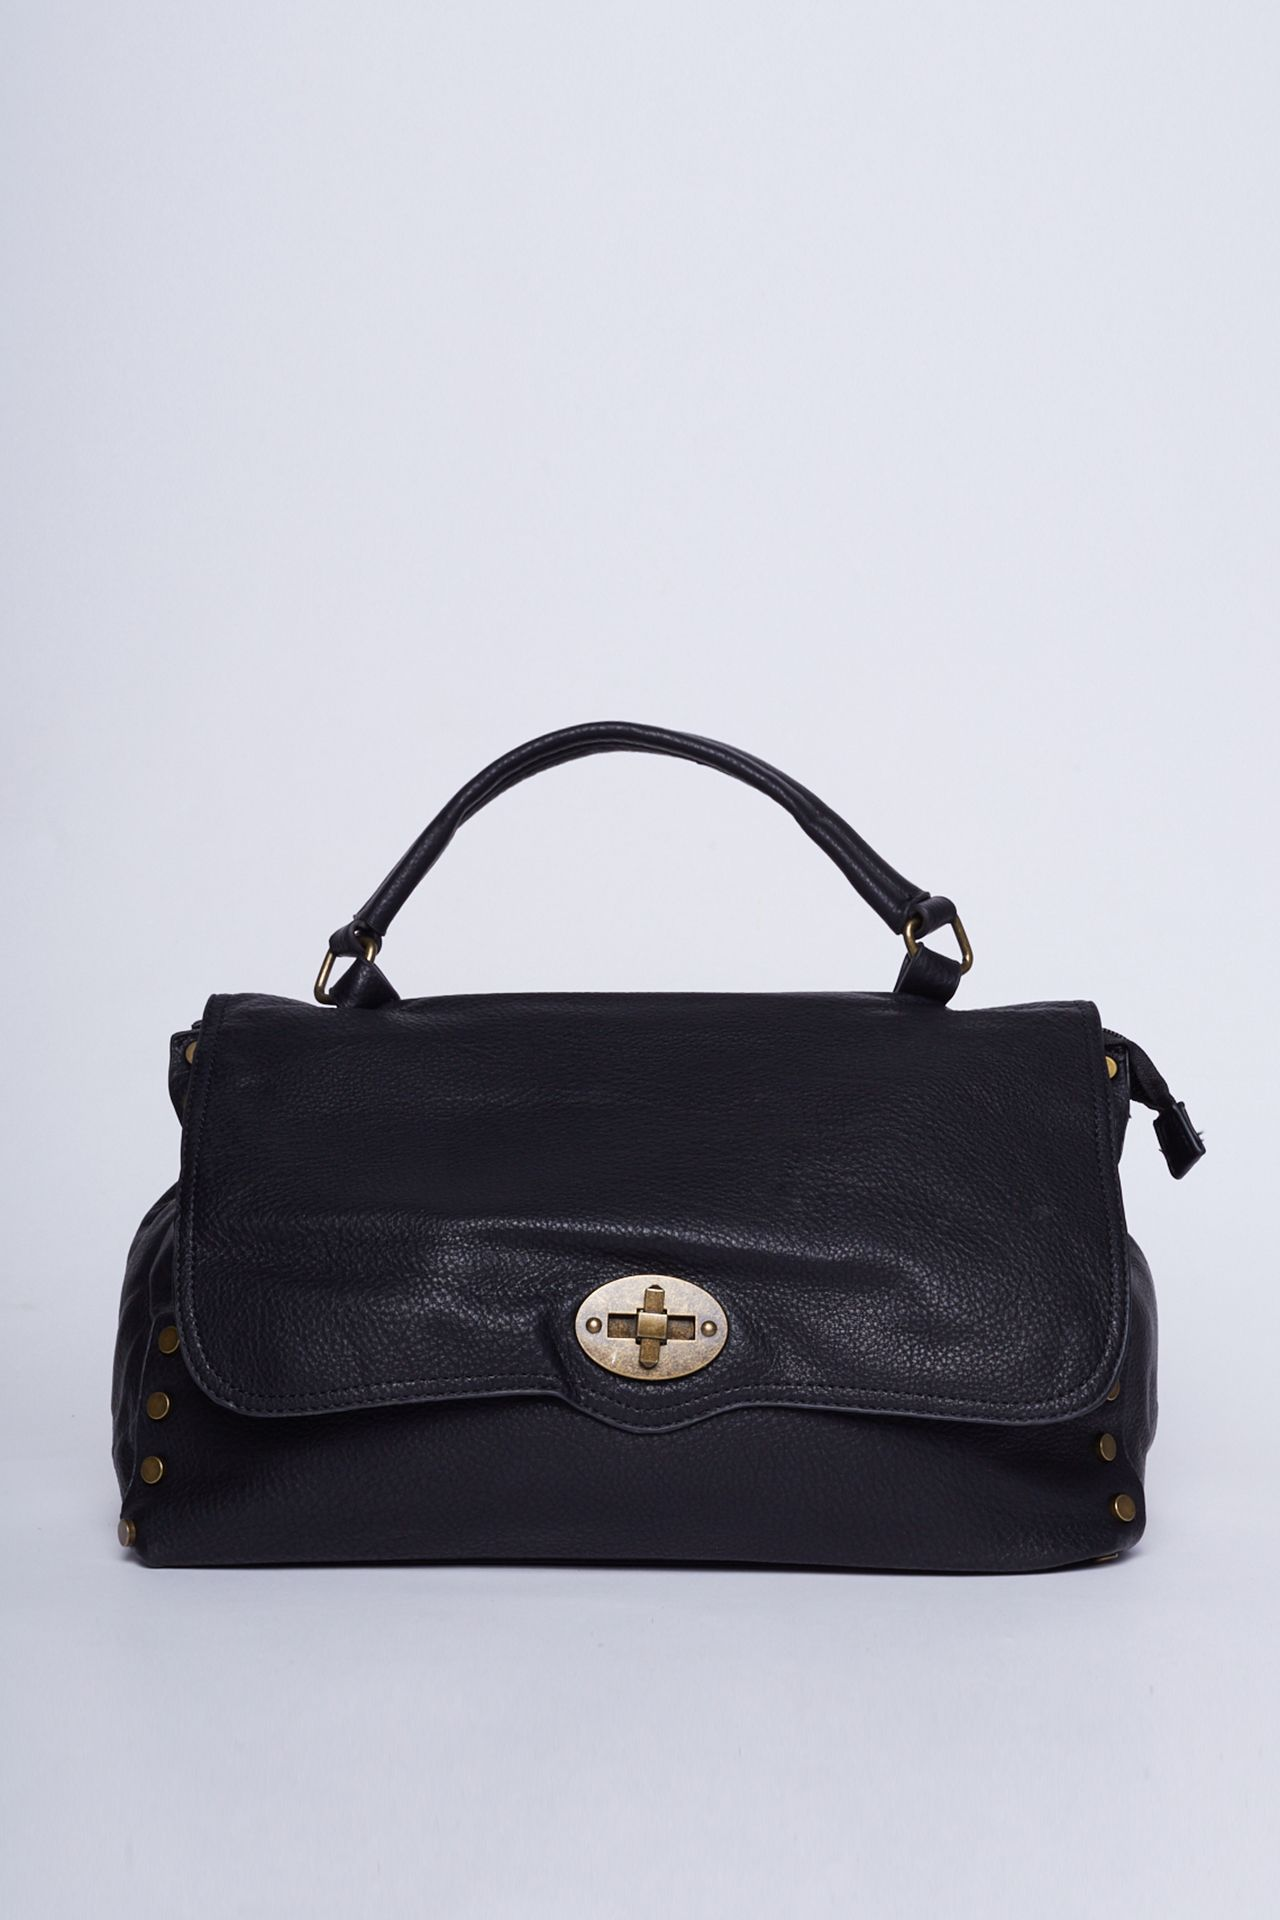 Borsa borchie - black Brend